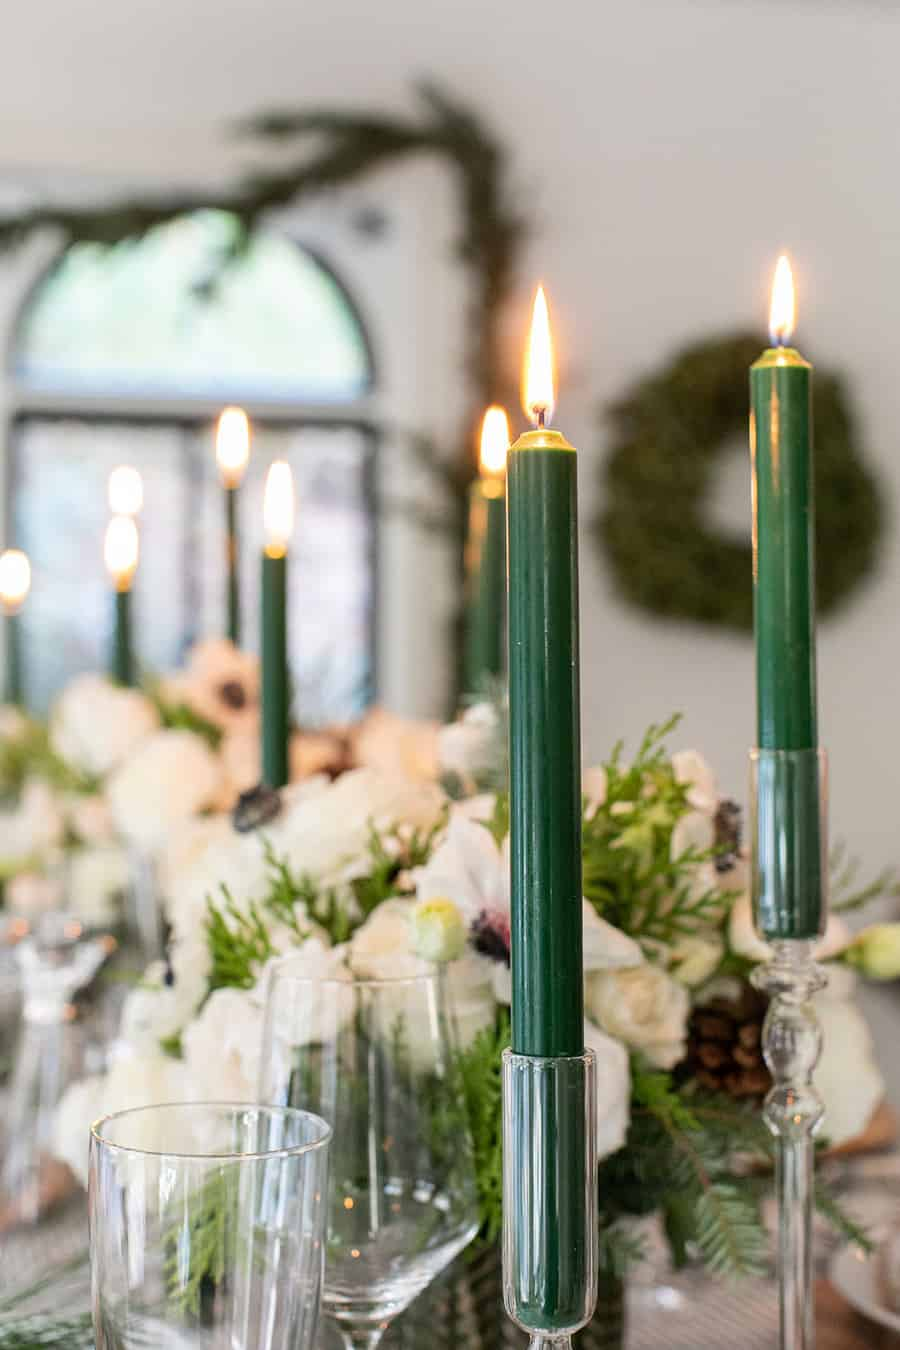 Green candles in candle holders.